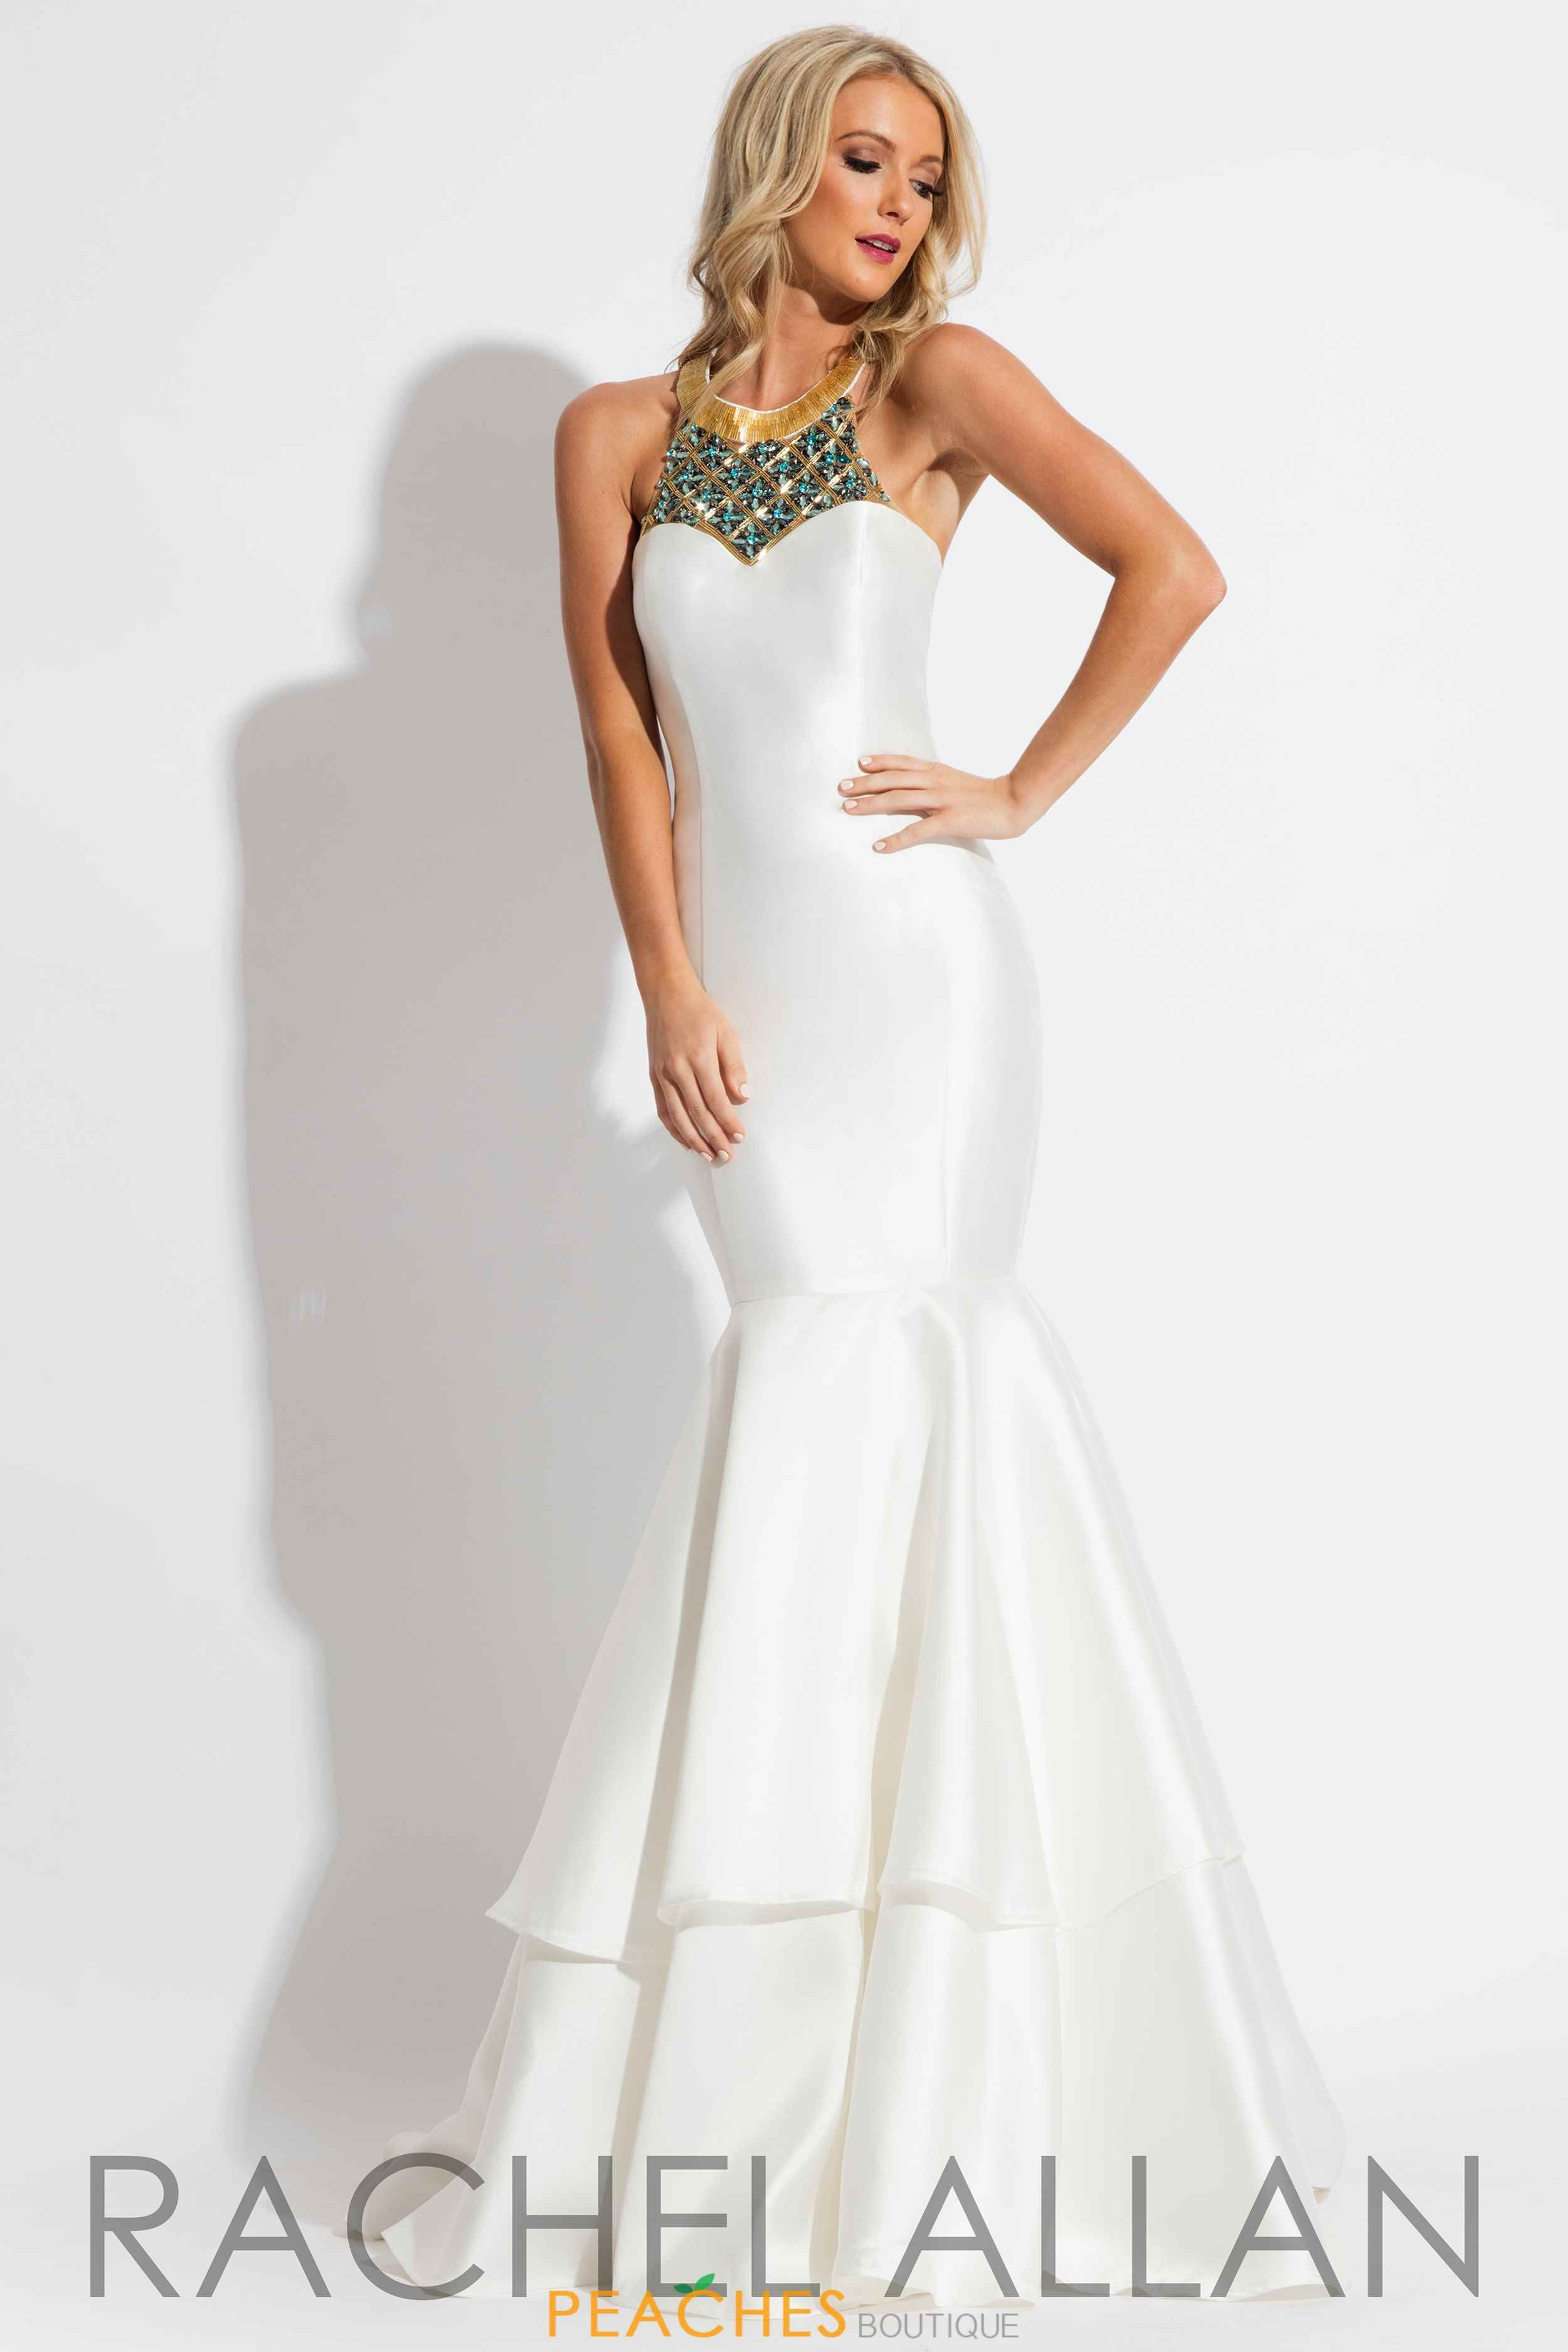 Pin by laura mullinax on pageant gowns pinterest dream dress